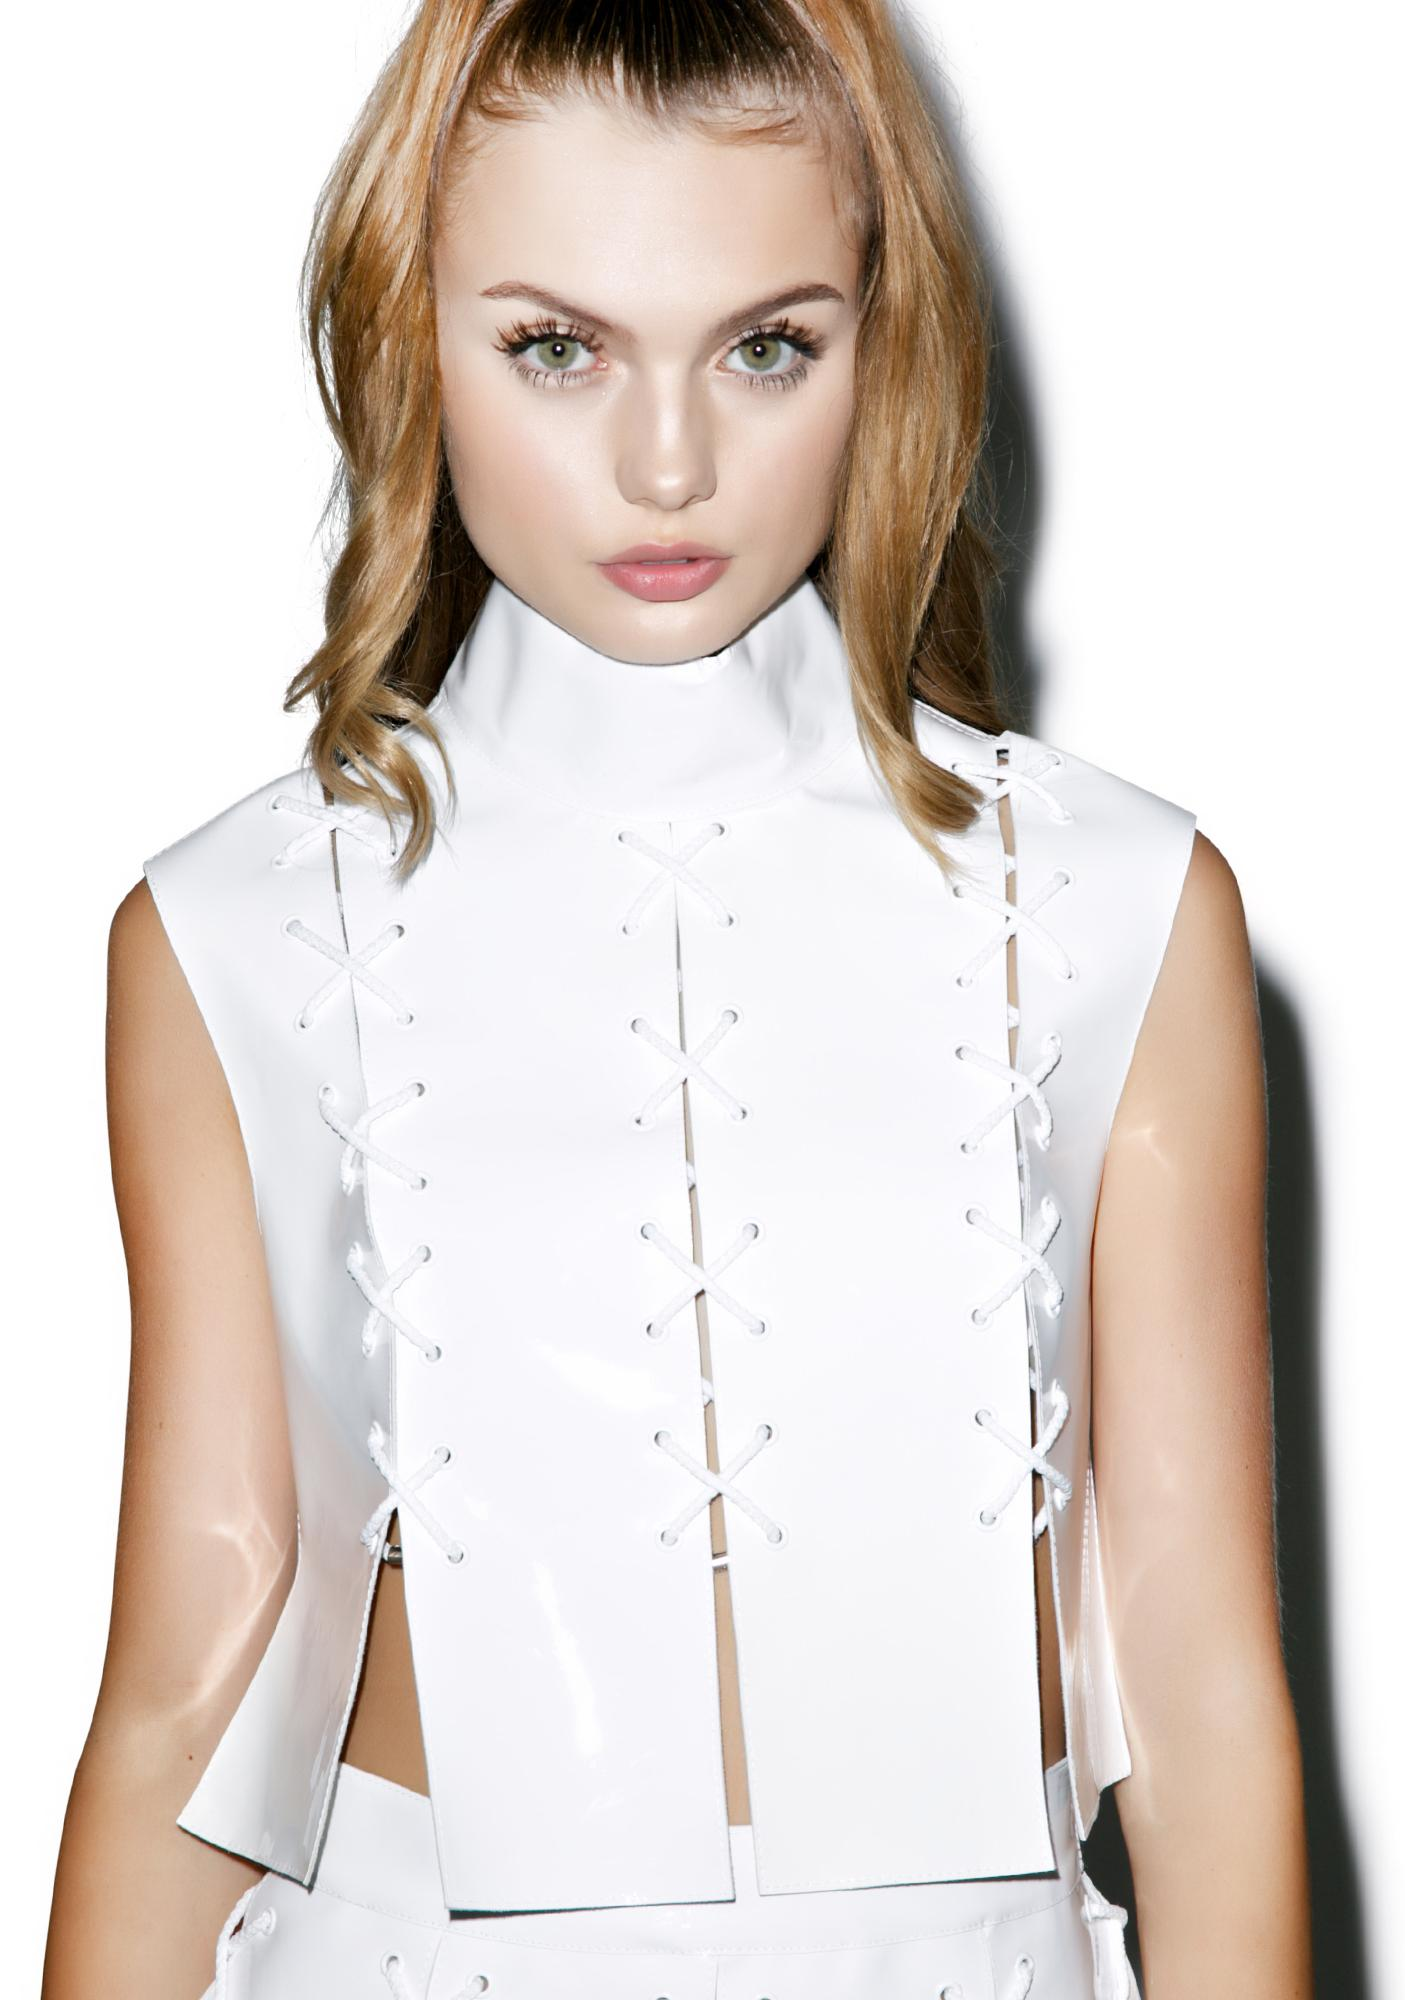 Maria ke Fisherman Cross Eyelet Patent Leather Top